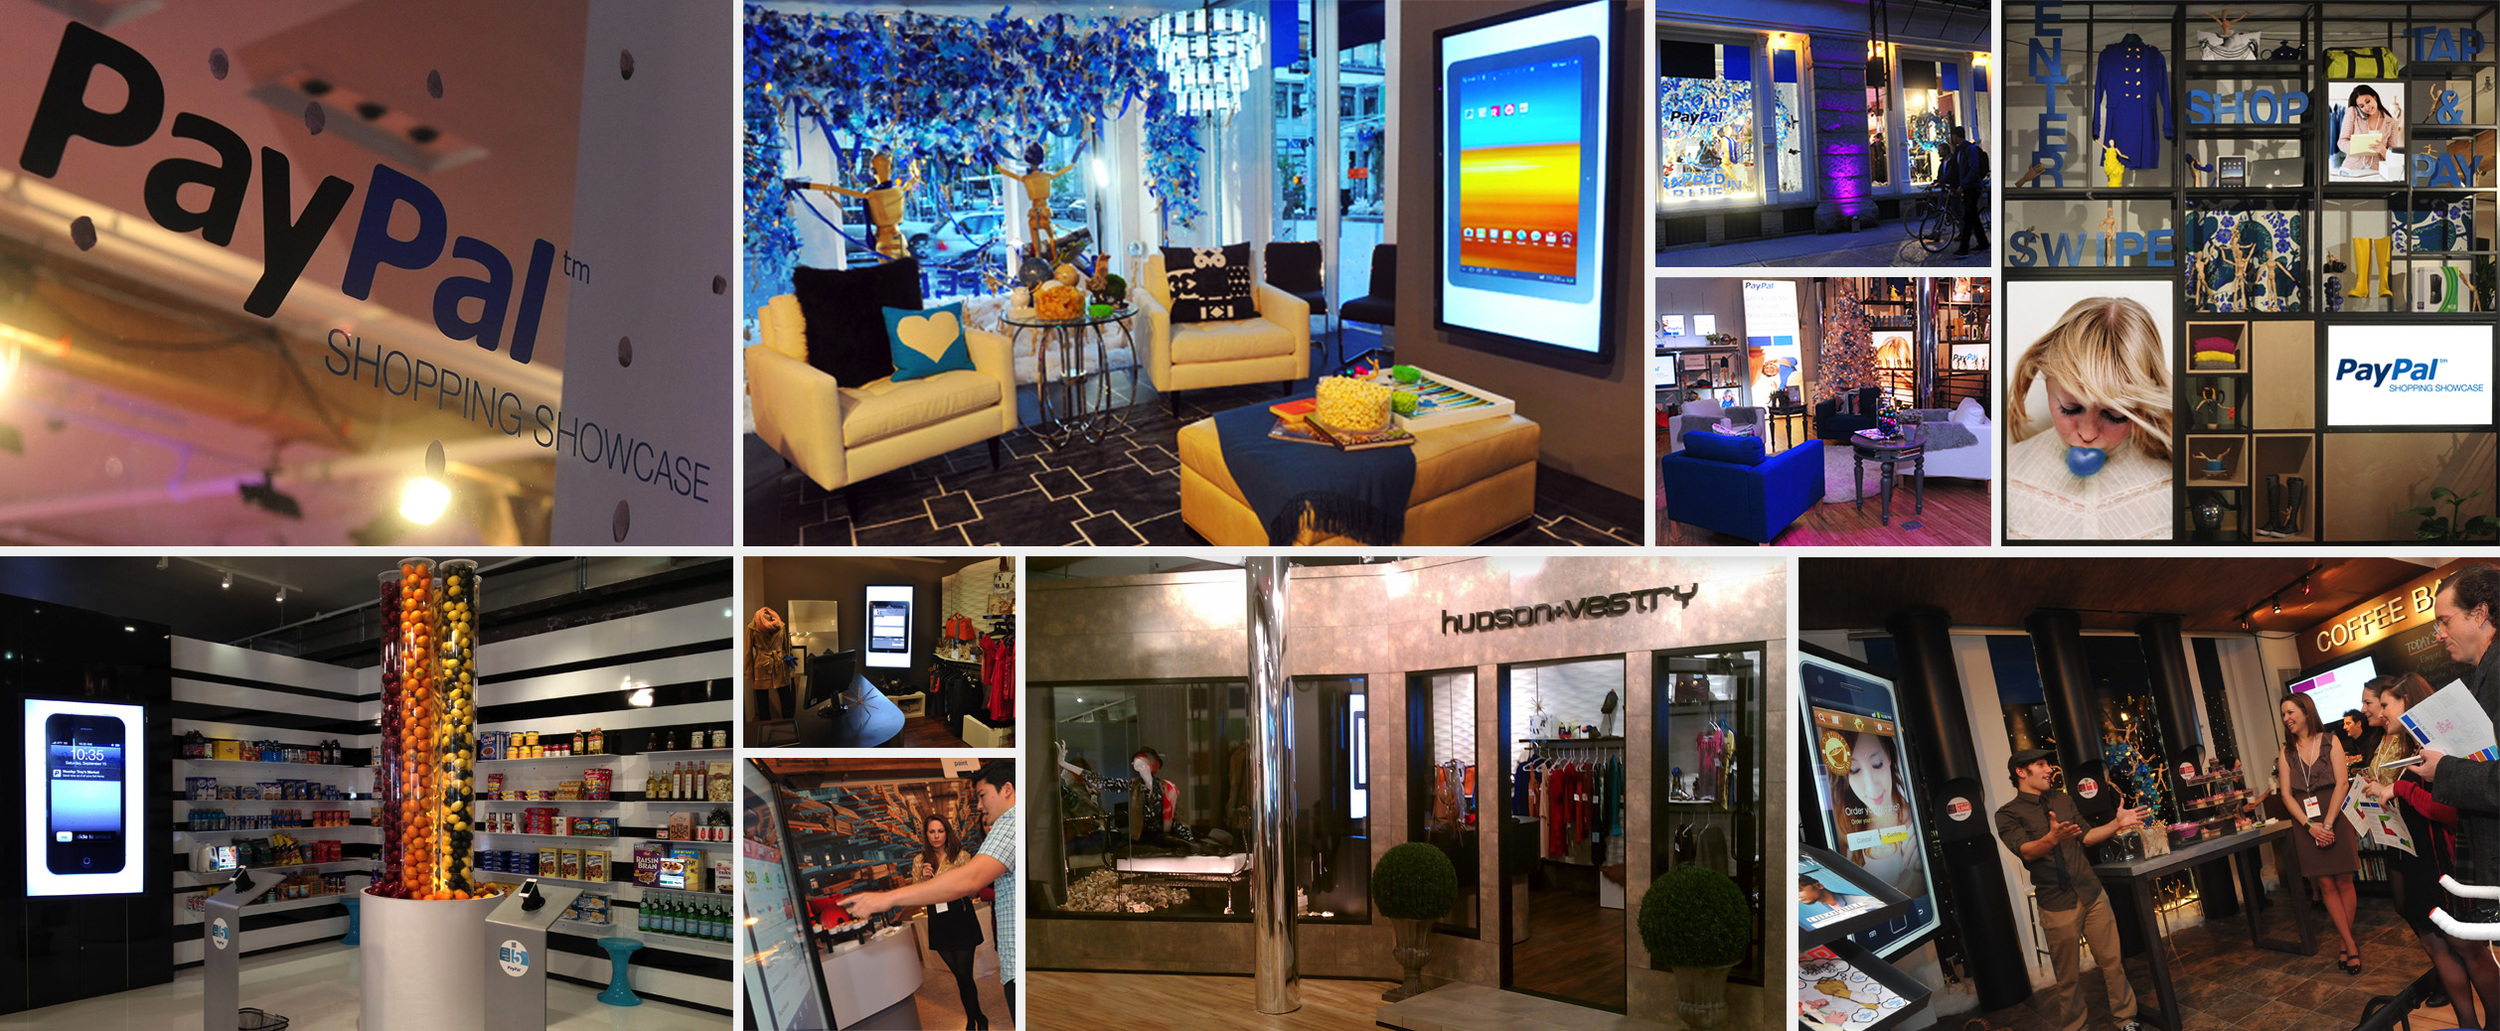 PayPal: Shopping Showcase– Tribeca Pop-Up Store, NYC